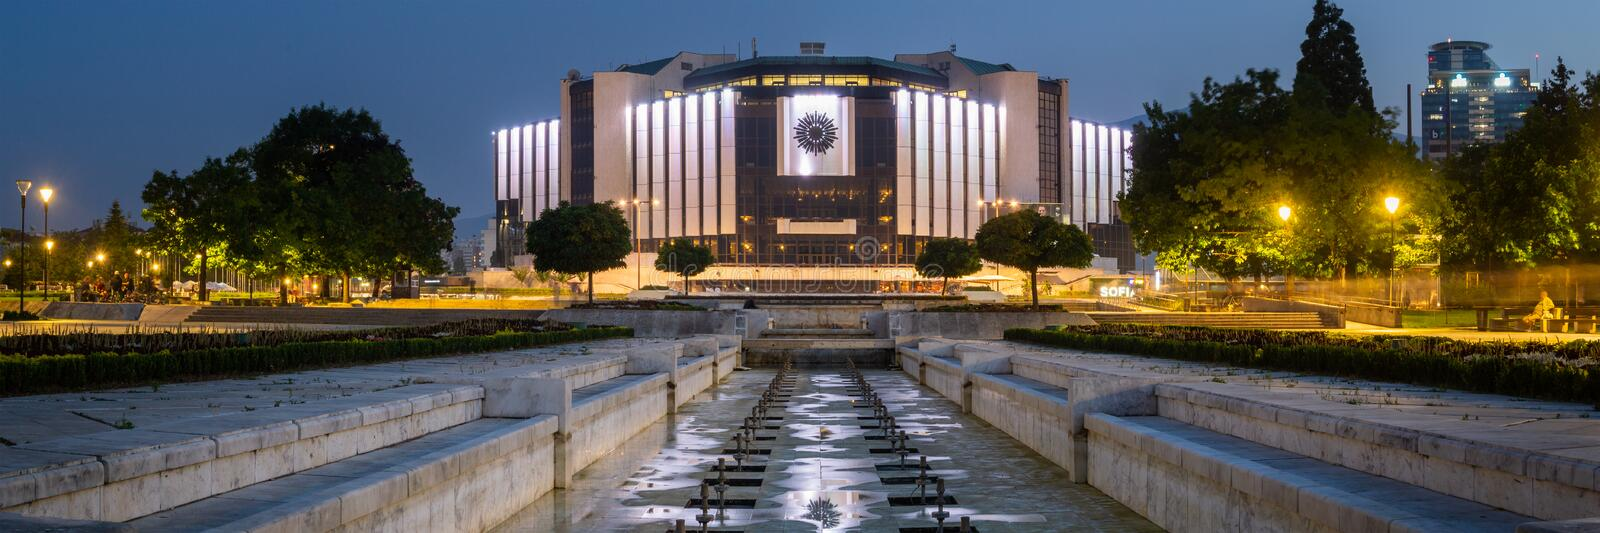 National Palace of Culture, Sofia - Bulgaria stock images